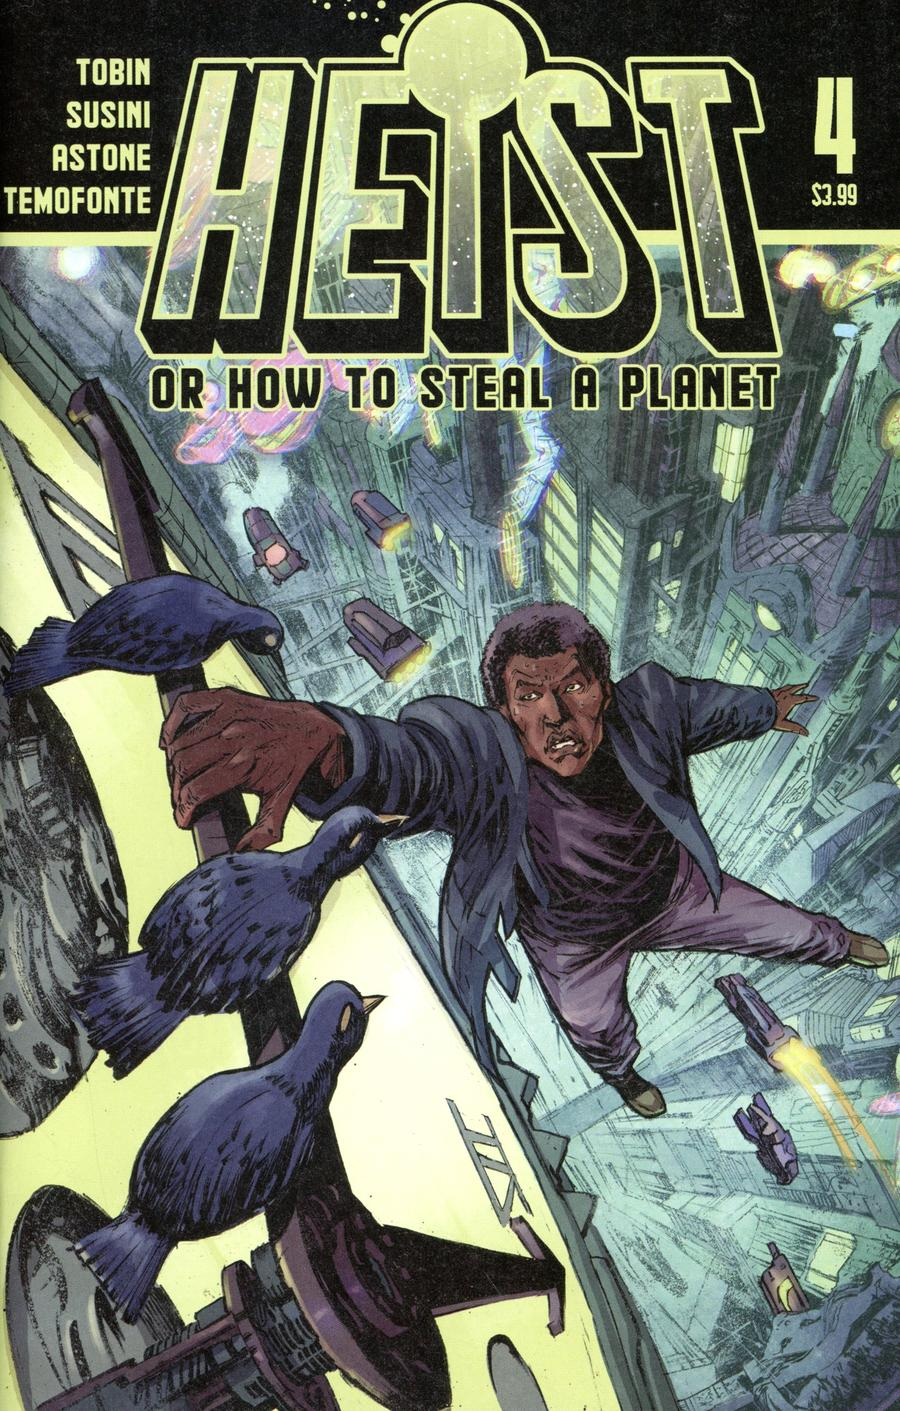 Heist: How To Steal A Planet #4 (2020)